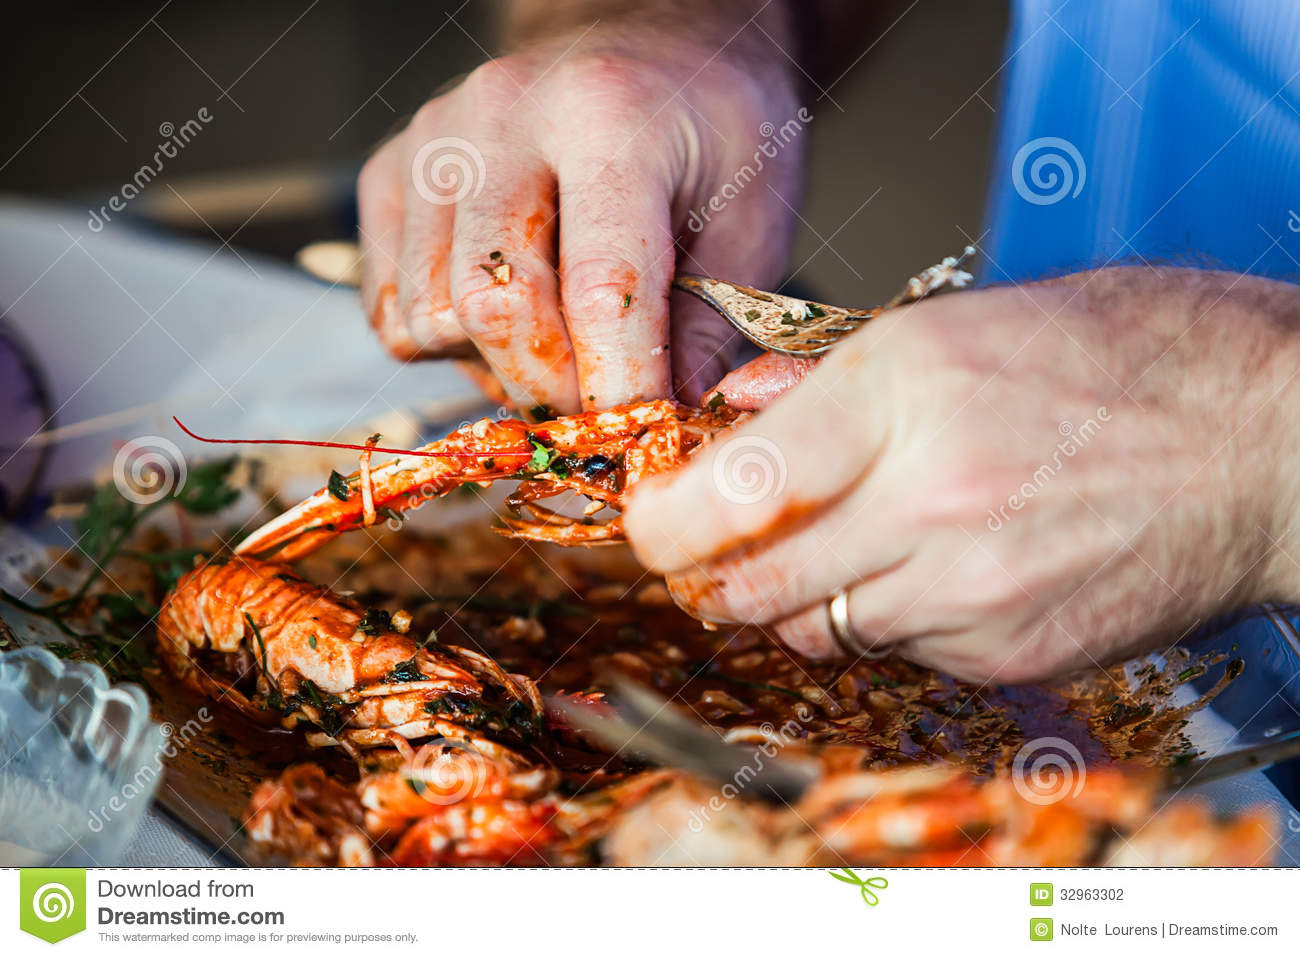 King Prawns And Oily Fingers Stock Photography - Image: 32963302